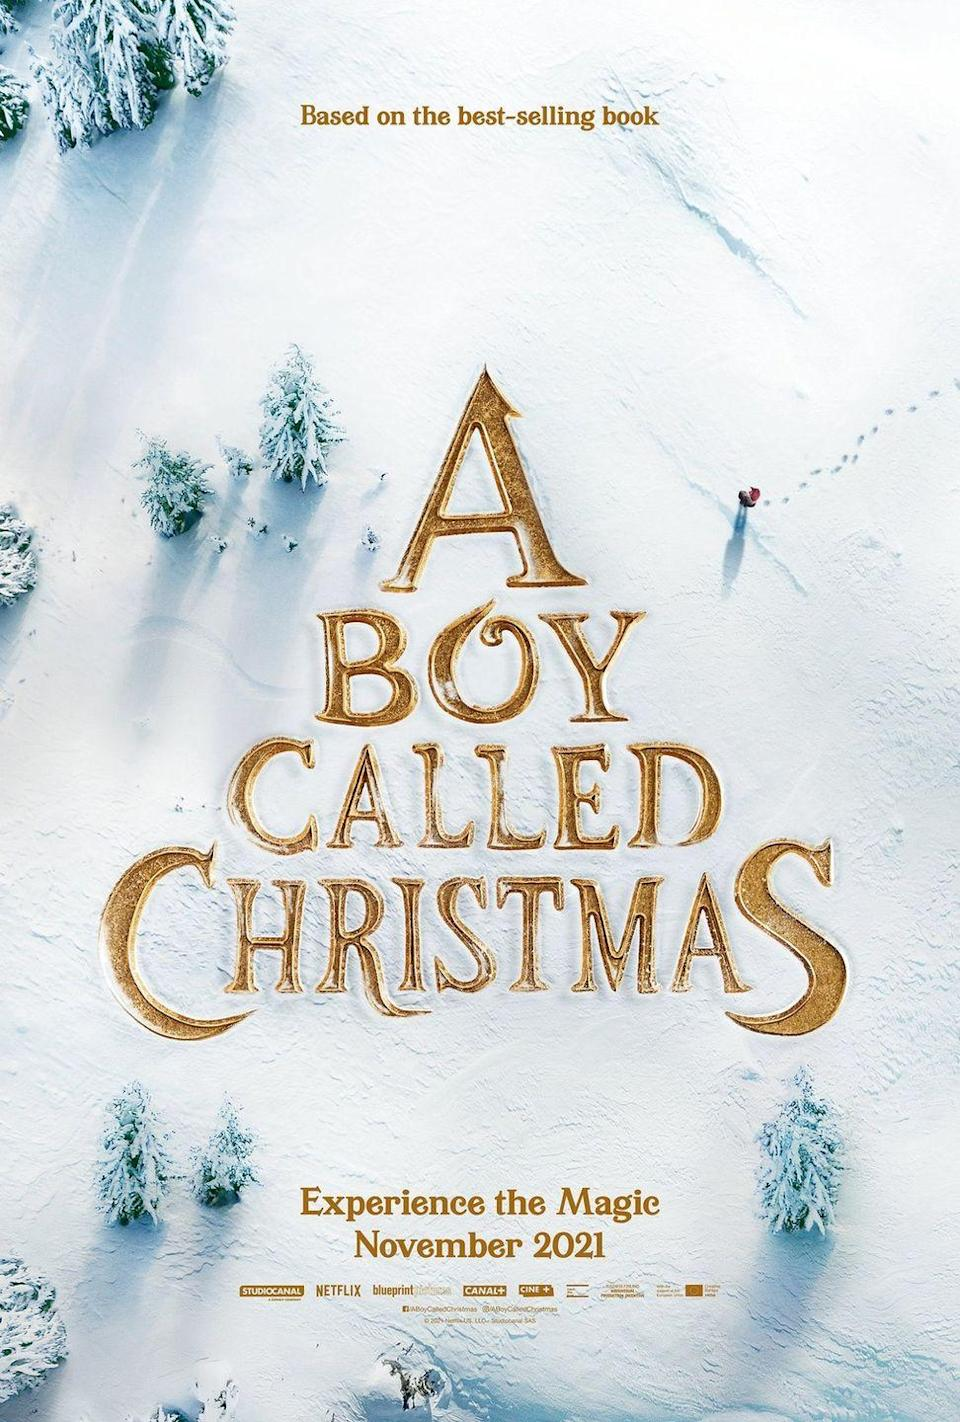 <p>Based on the novel of the same name, this enchanting movie follows a boy named Nikolas who journeys to the snowy north in search of his father. He's accompanied by a loyal pet mouse and a spunky reindeer named Blitzen as they encounter obstacles and adventures along the way. </p><p><strong>Release Date: </strong>November 2021</p><p><strong>Stream on: </strong>Netflix </p>